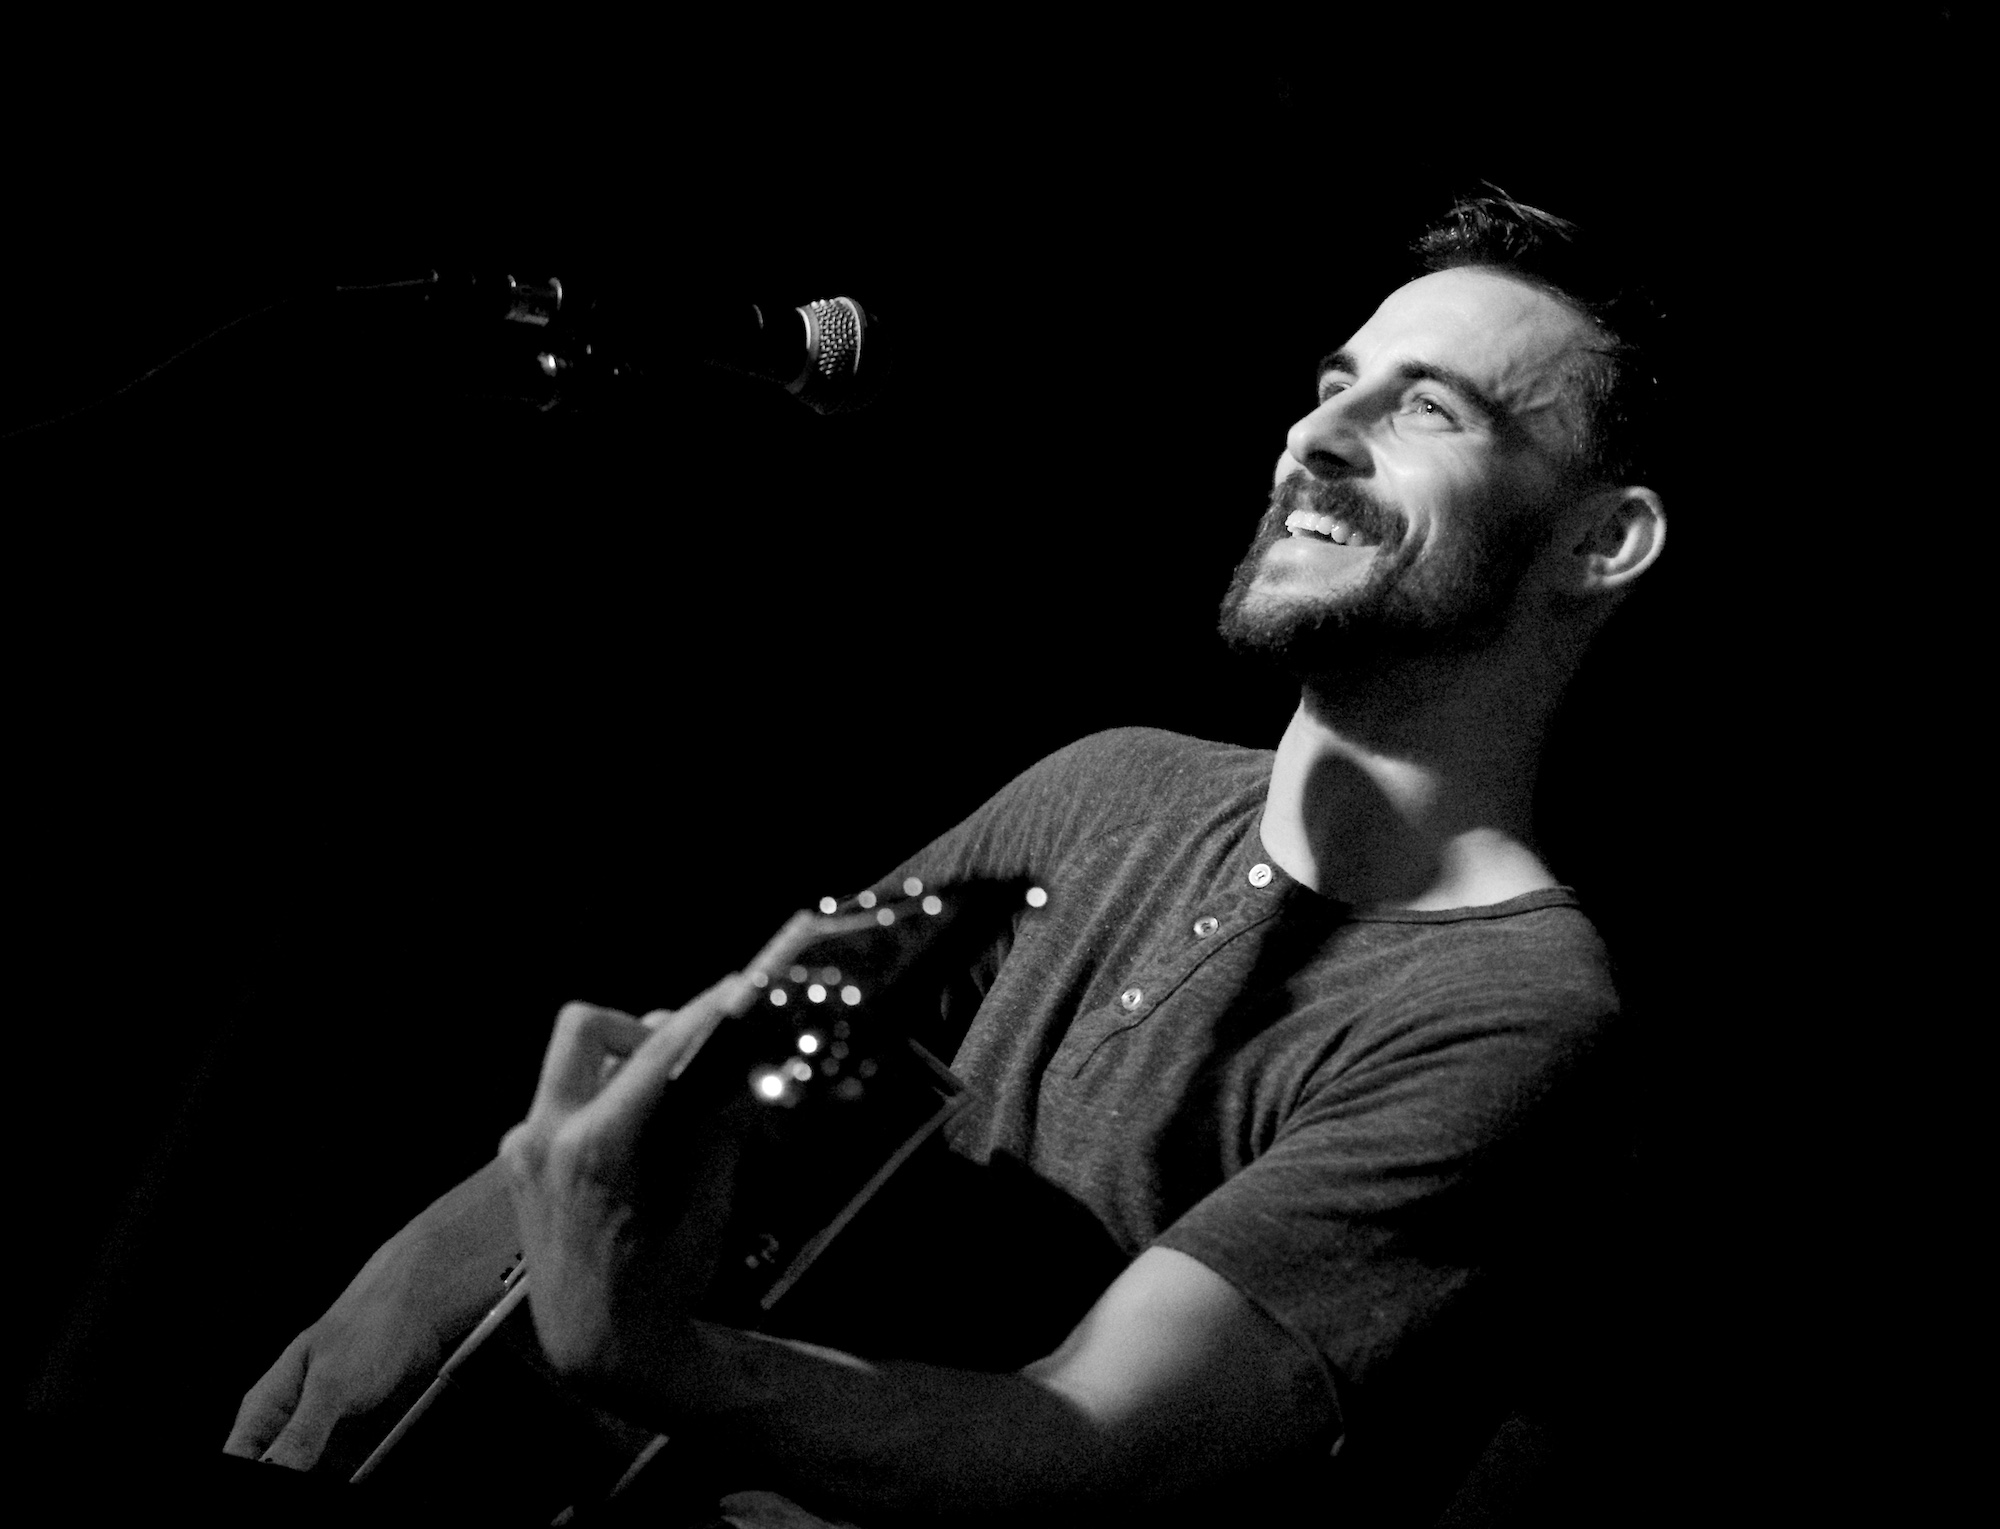 Robert Ellis performs at McGonigel's Mucky Duck, Houston, TX. May 22, 2014